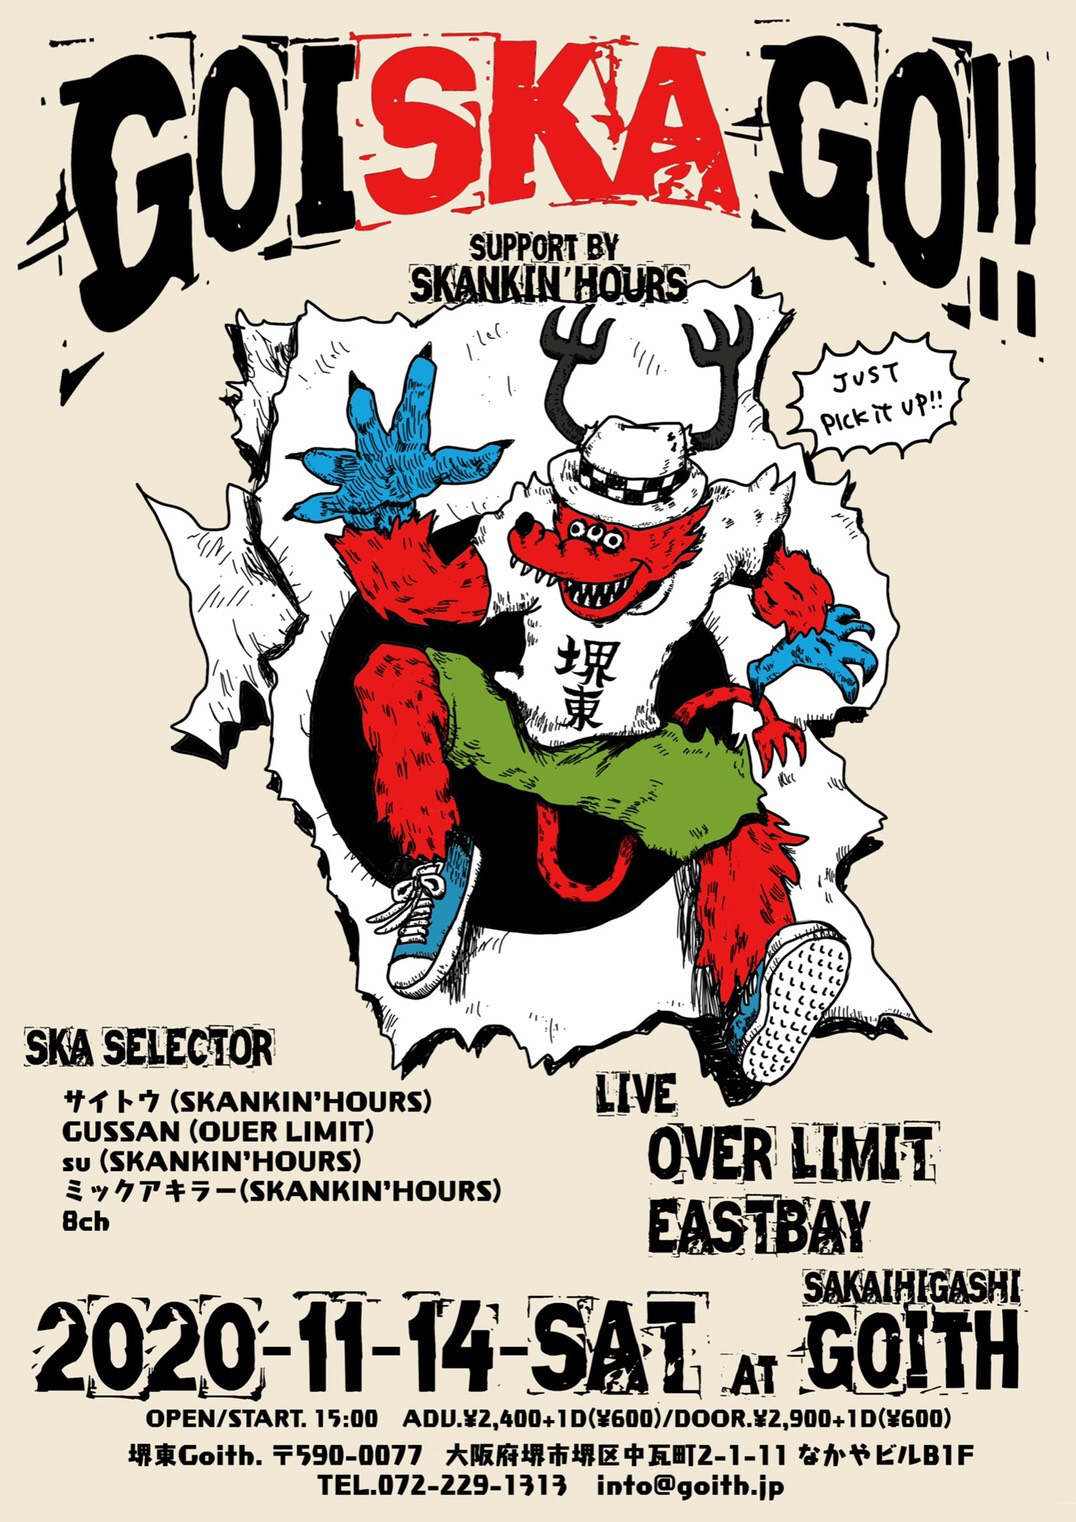 GOISKA GO!!EXTRA2020 support by.SKANKIN'HOURSの写真